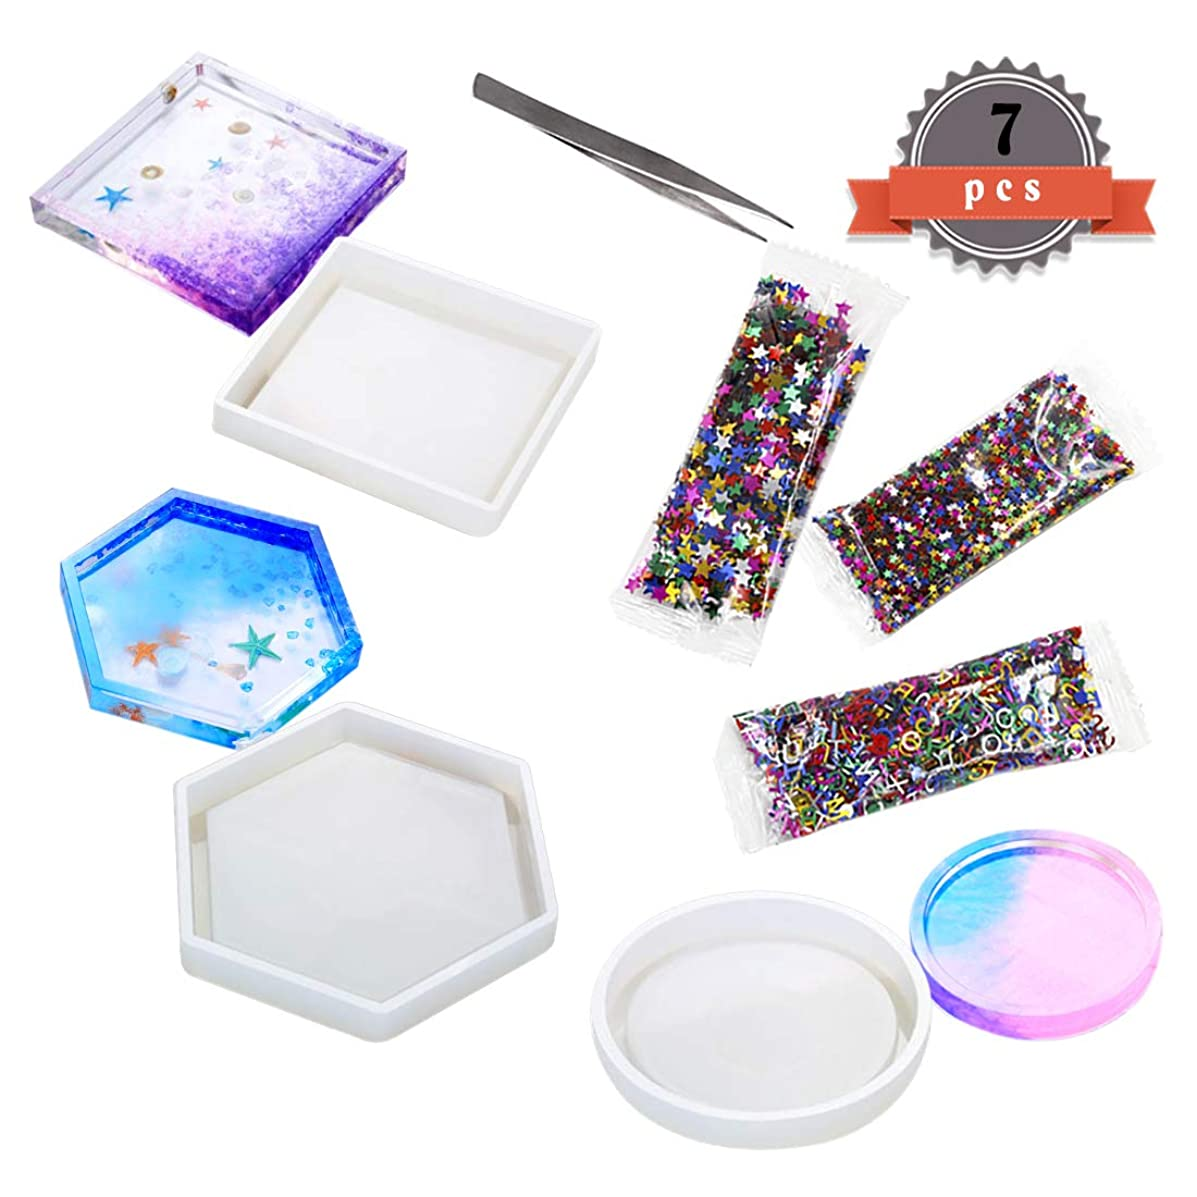 FineInno 3pcs Silicone Molds Epoxy Resin Molds Resin Casting Molds Include Round, Square, Hexagon for Coasters, Free Sequins Shiny (Hexagon/Square/Round)